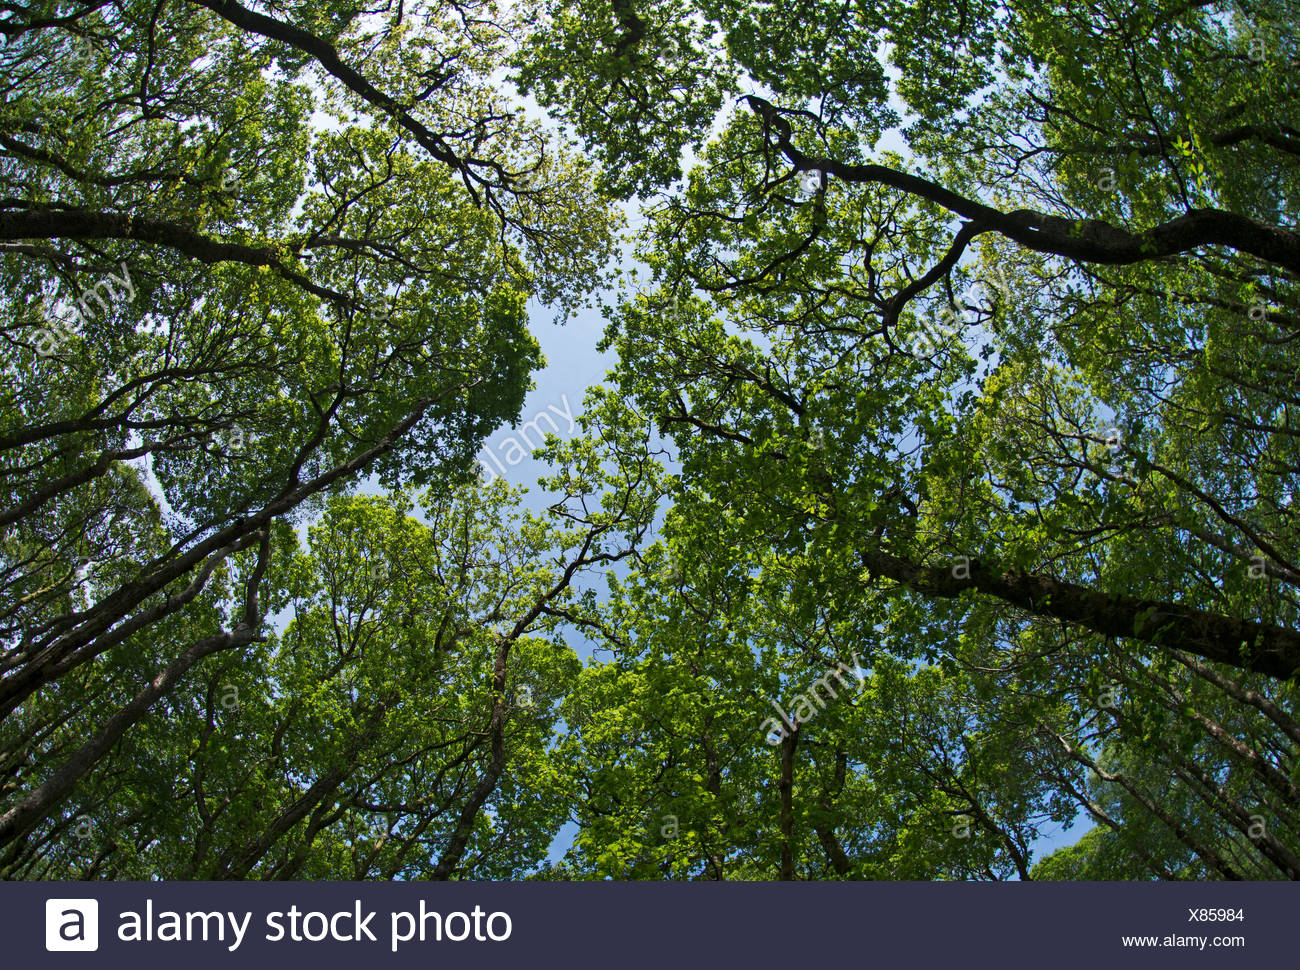 Looking up at canopy in Oak woodland at Wood of Cree RSPB Reserve Dumfries & Galloway Scotland - Stock Image